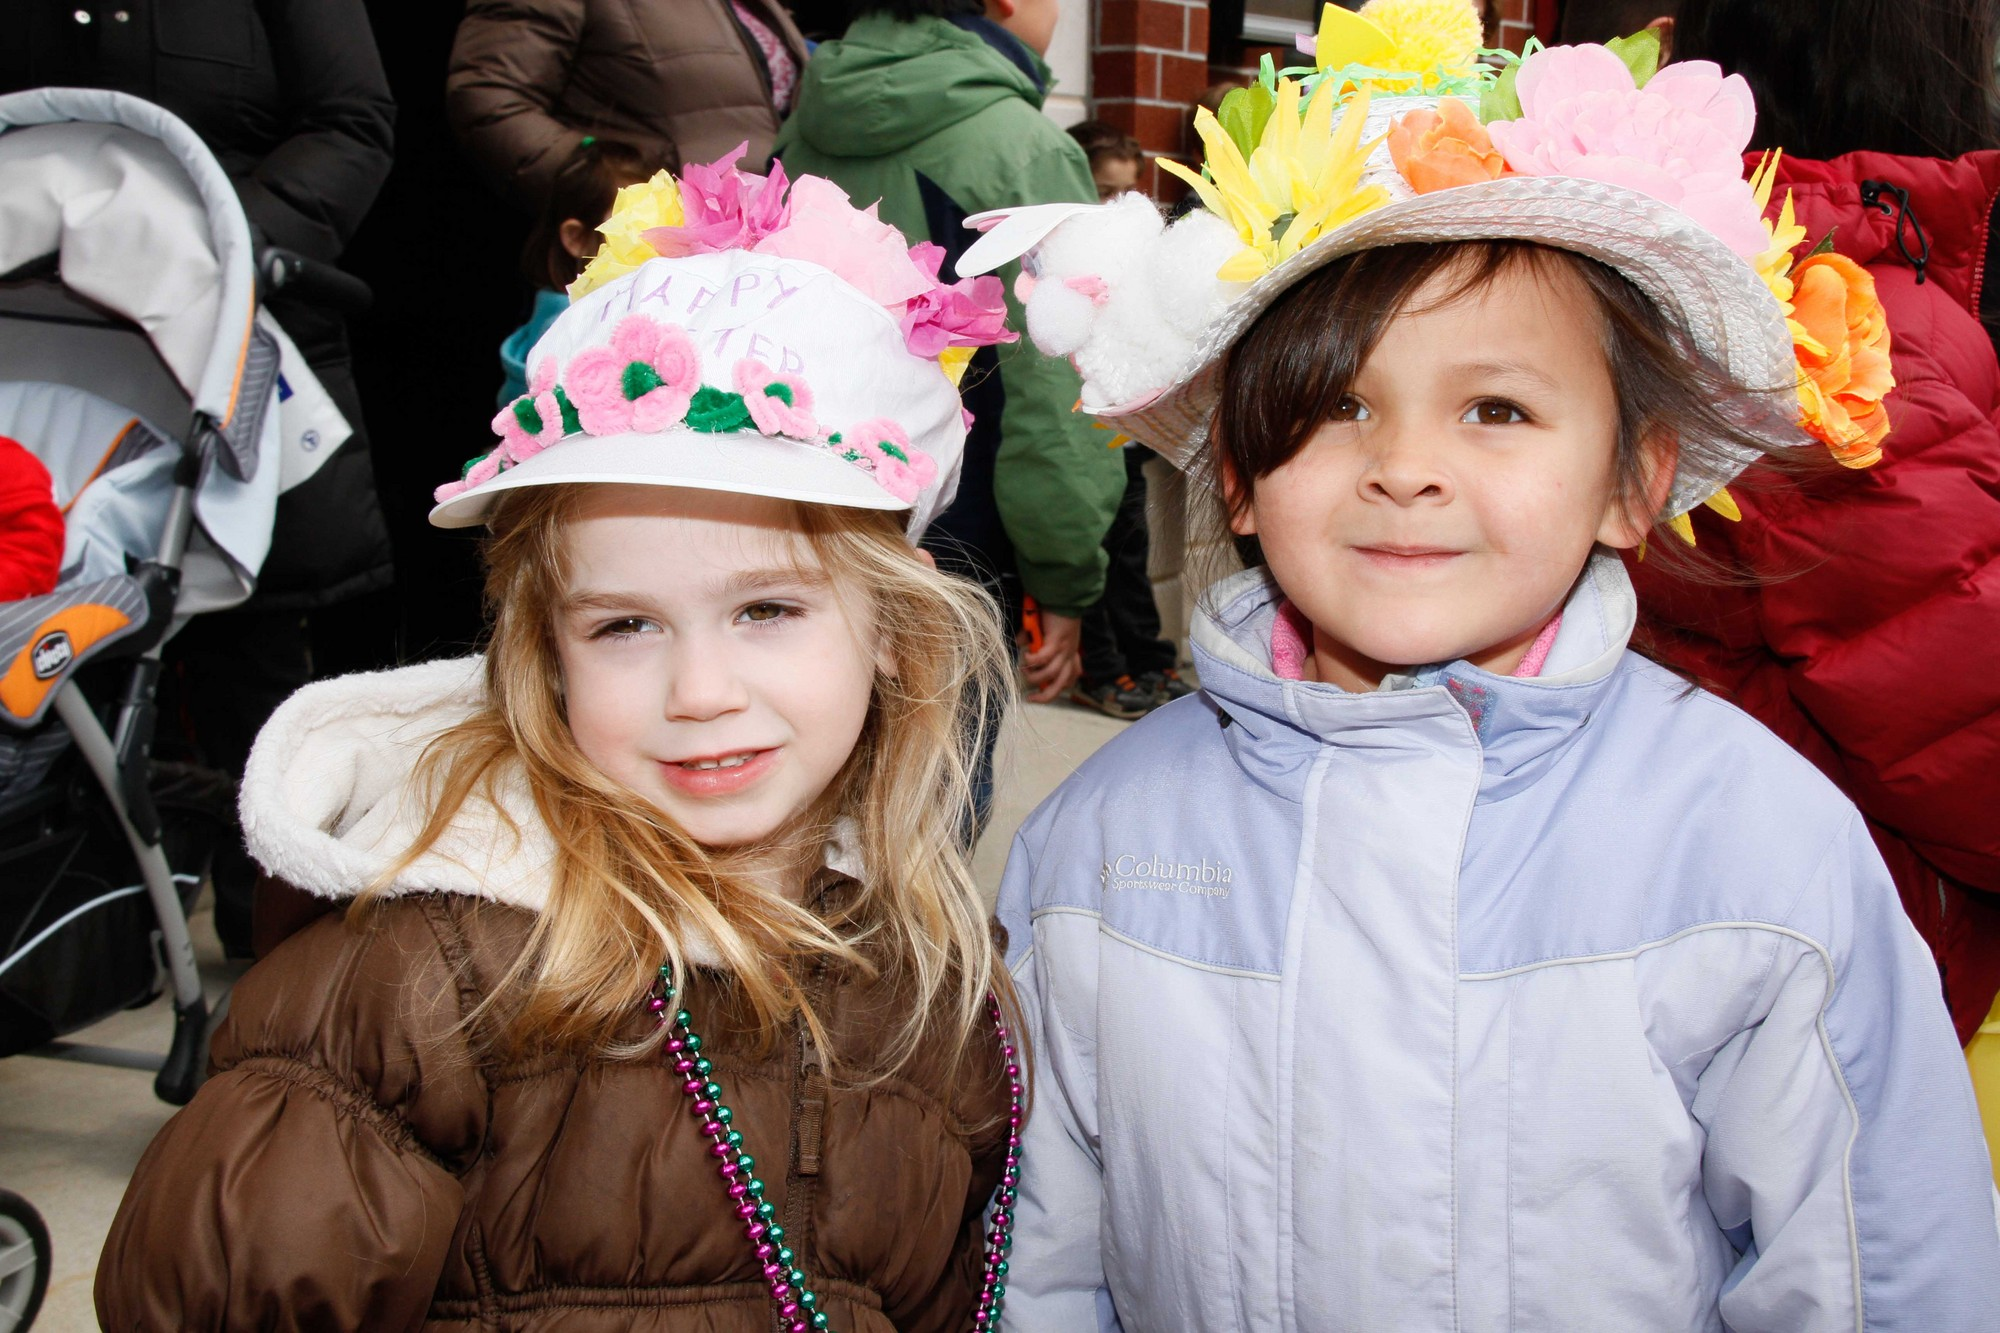 Abigail McGlone, 3, left, and Grace Ham, 5, wore their Easter bonnets for the parade.